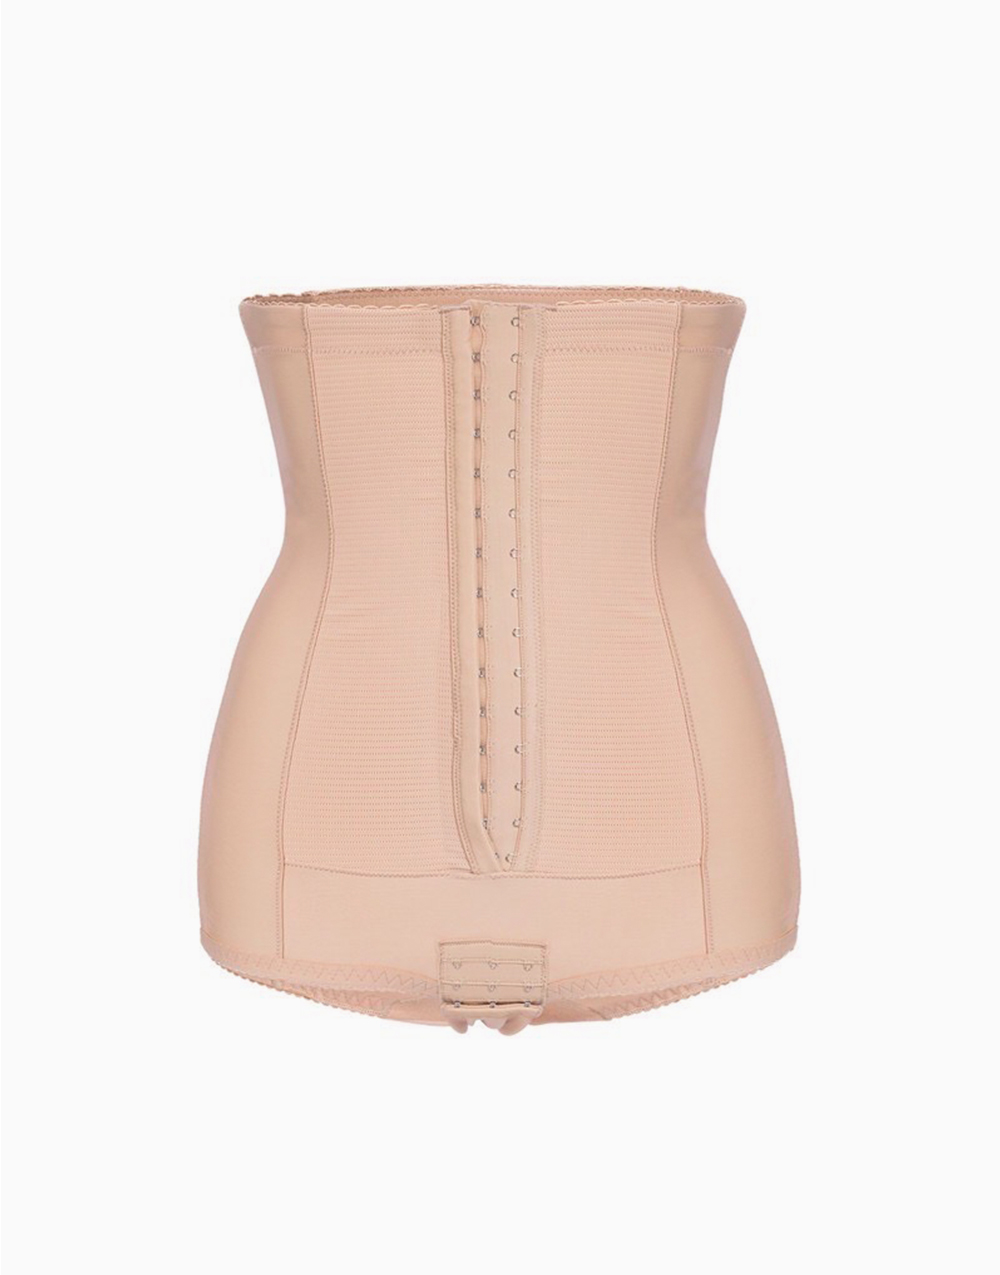 DIANNE Post Partum Recovery Shapewear - Nude by Shapewear Solutions |